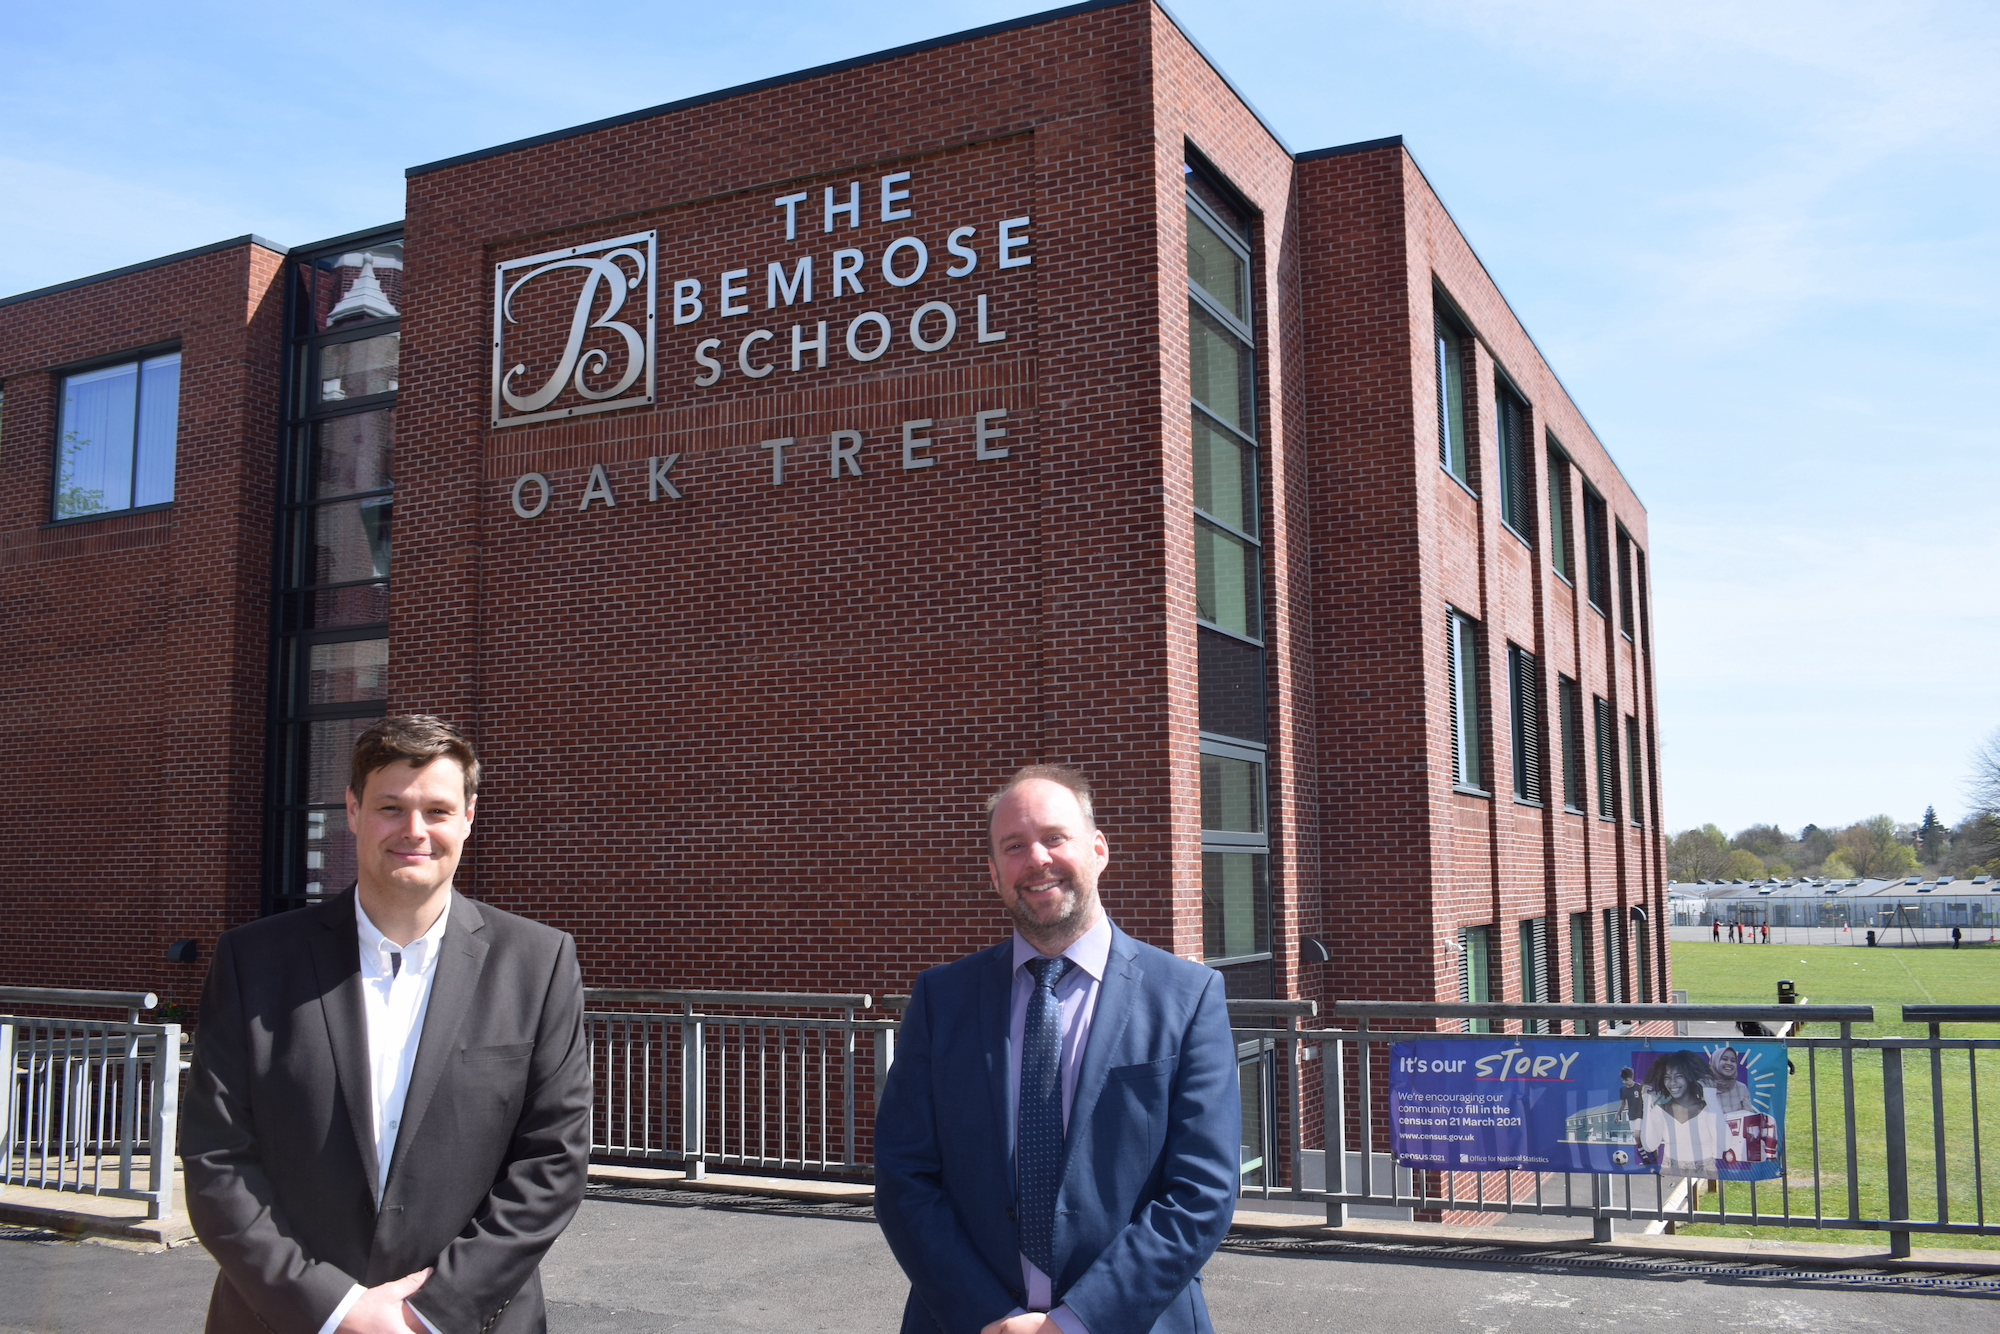 DERBY COMPANY DEVELOPS GROUNDBREAKING EDUCATION SOFTWARE